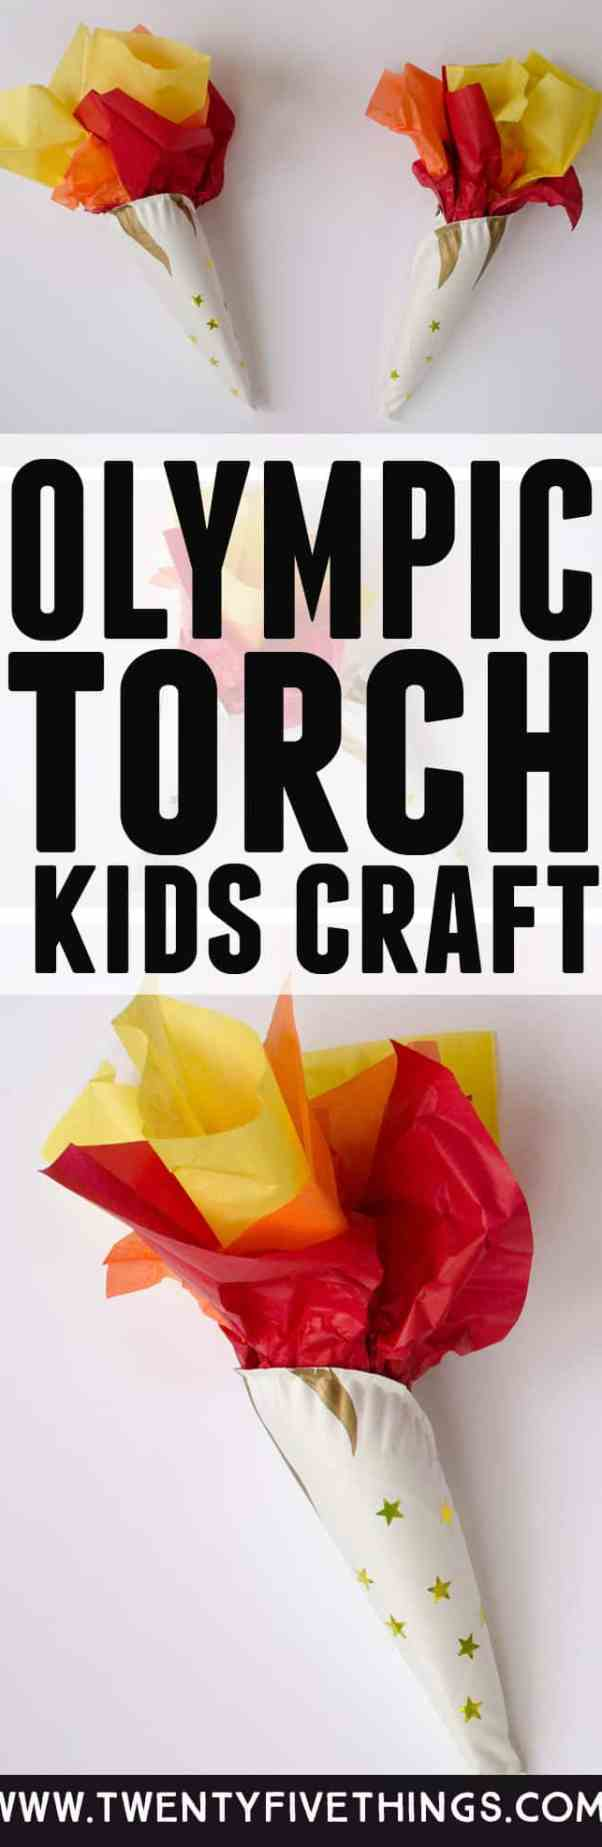 This Olympic torch craft is a fun way to celebrate the Olympics with kids. Slide a battery-powered tea light inside to make the torch glow. #WinterOlympics #OlympicGames #KidsCrafts